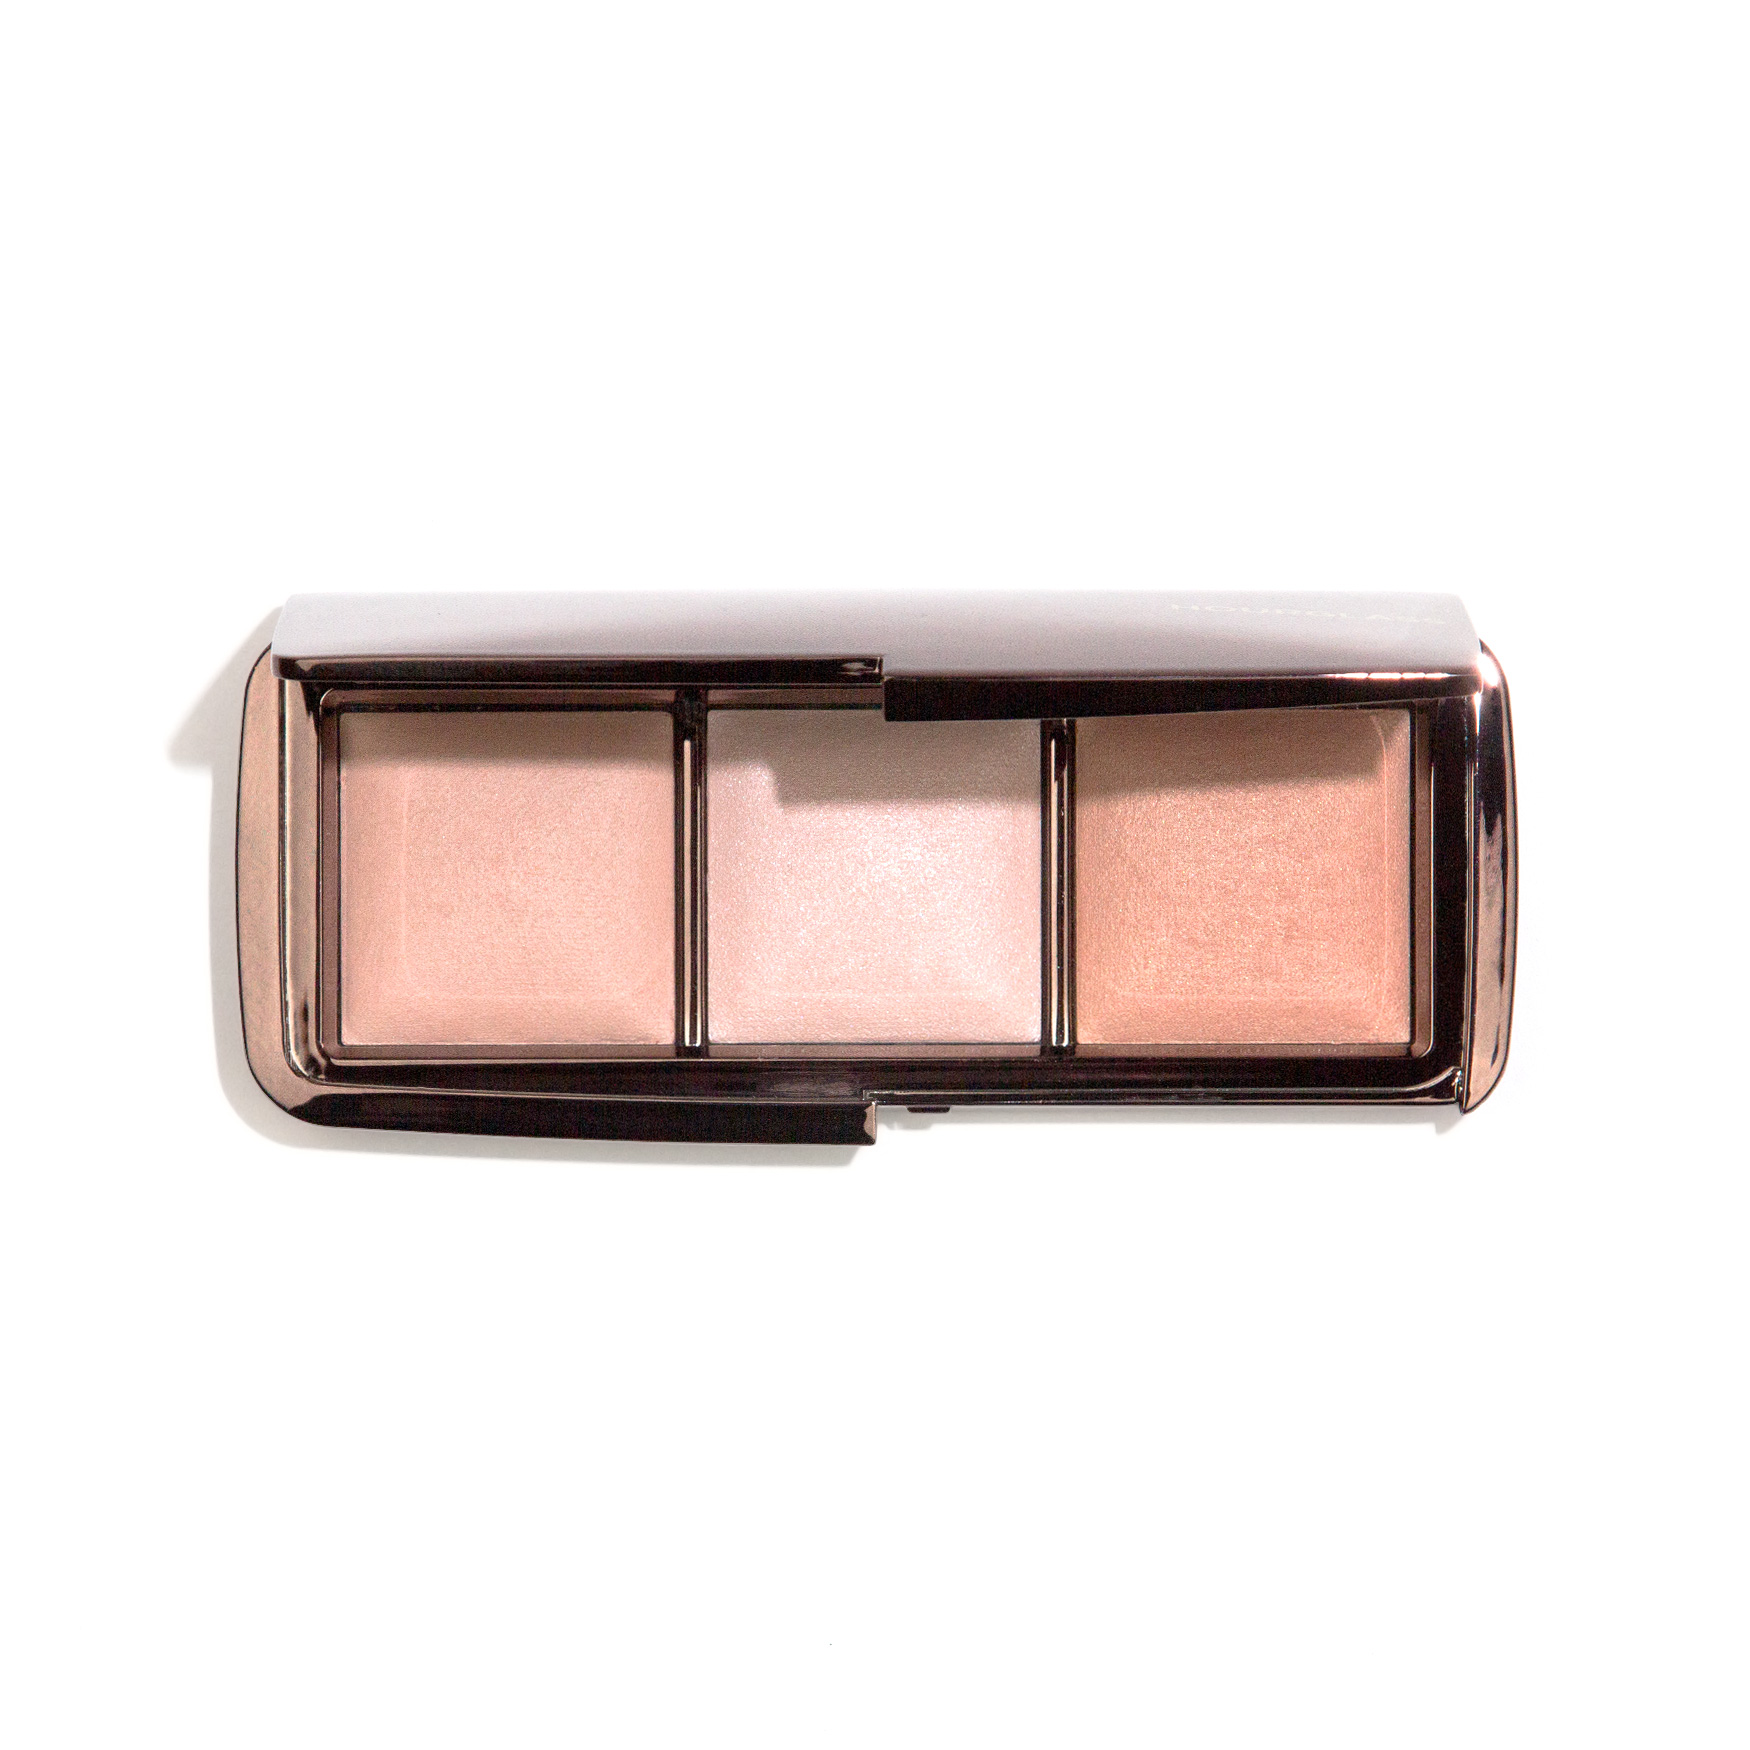 Hourgl Ambient Lighting Palette